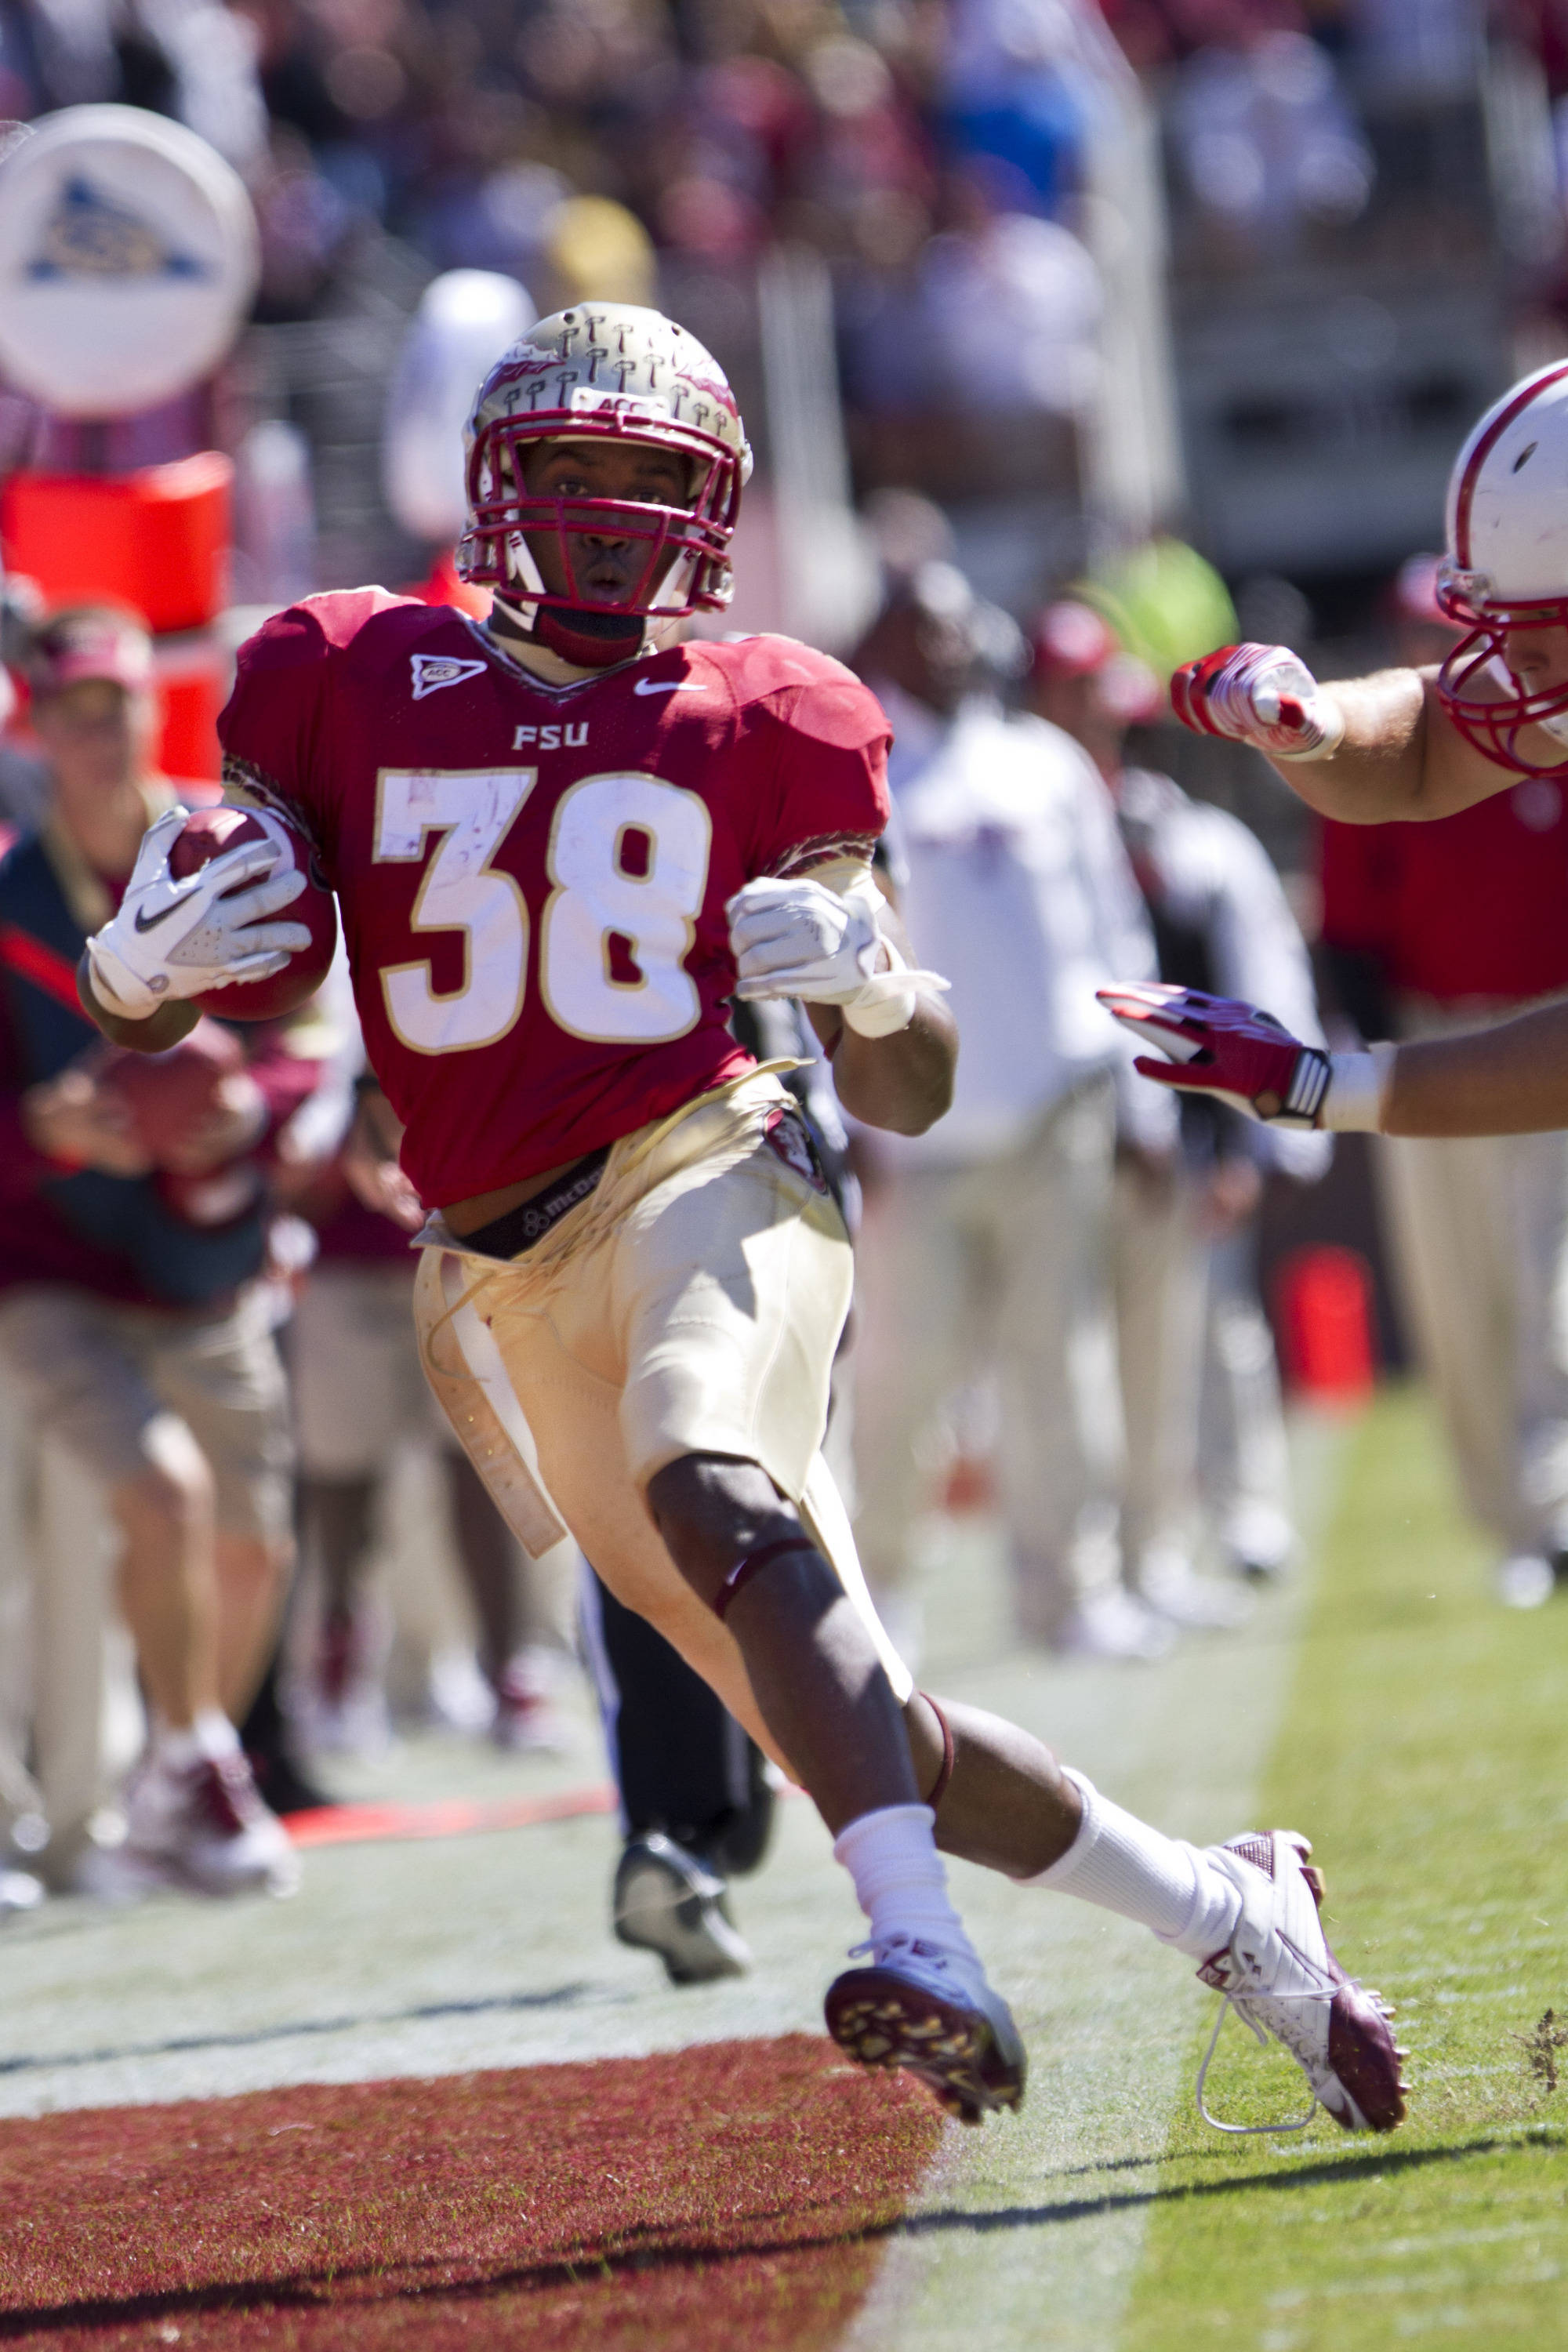 Jermaine Thomas (38) tries to stay in bounds as he runs down the sideline during the football game against NC State on October 29, 2011.